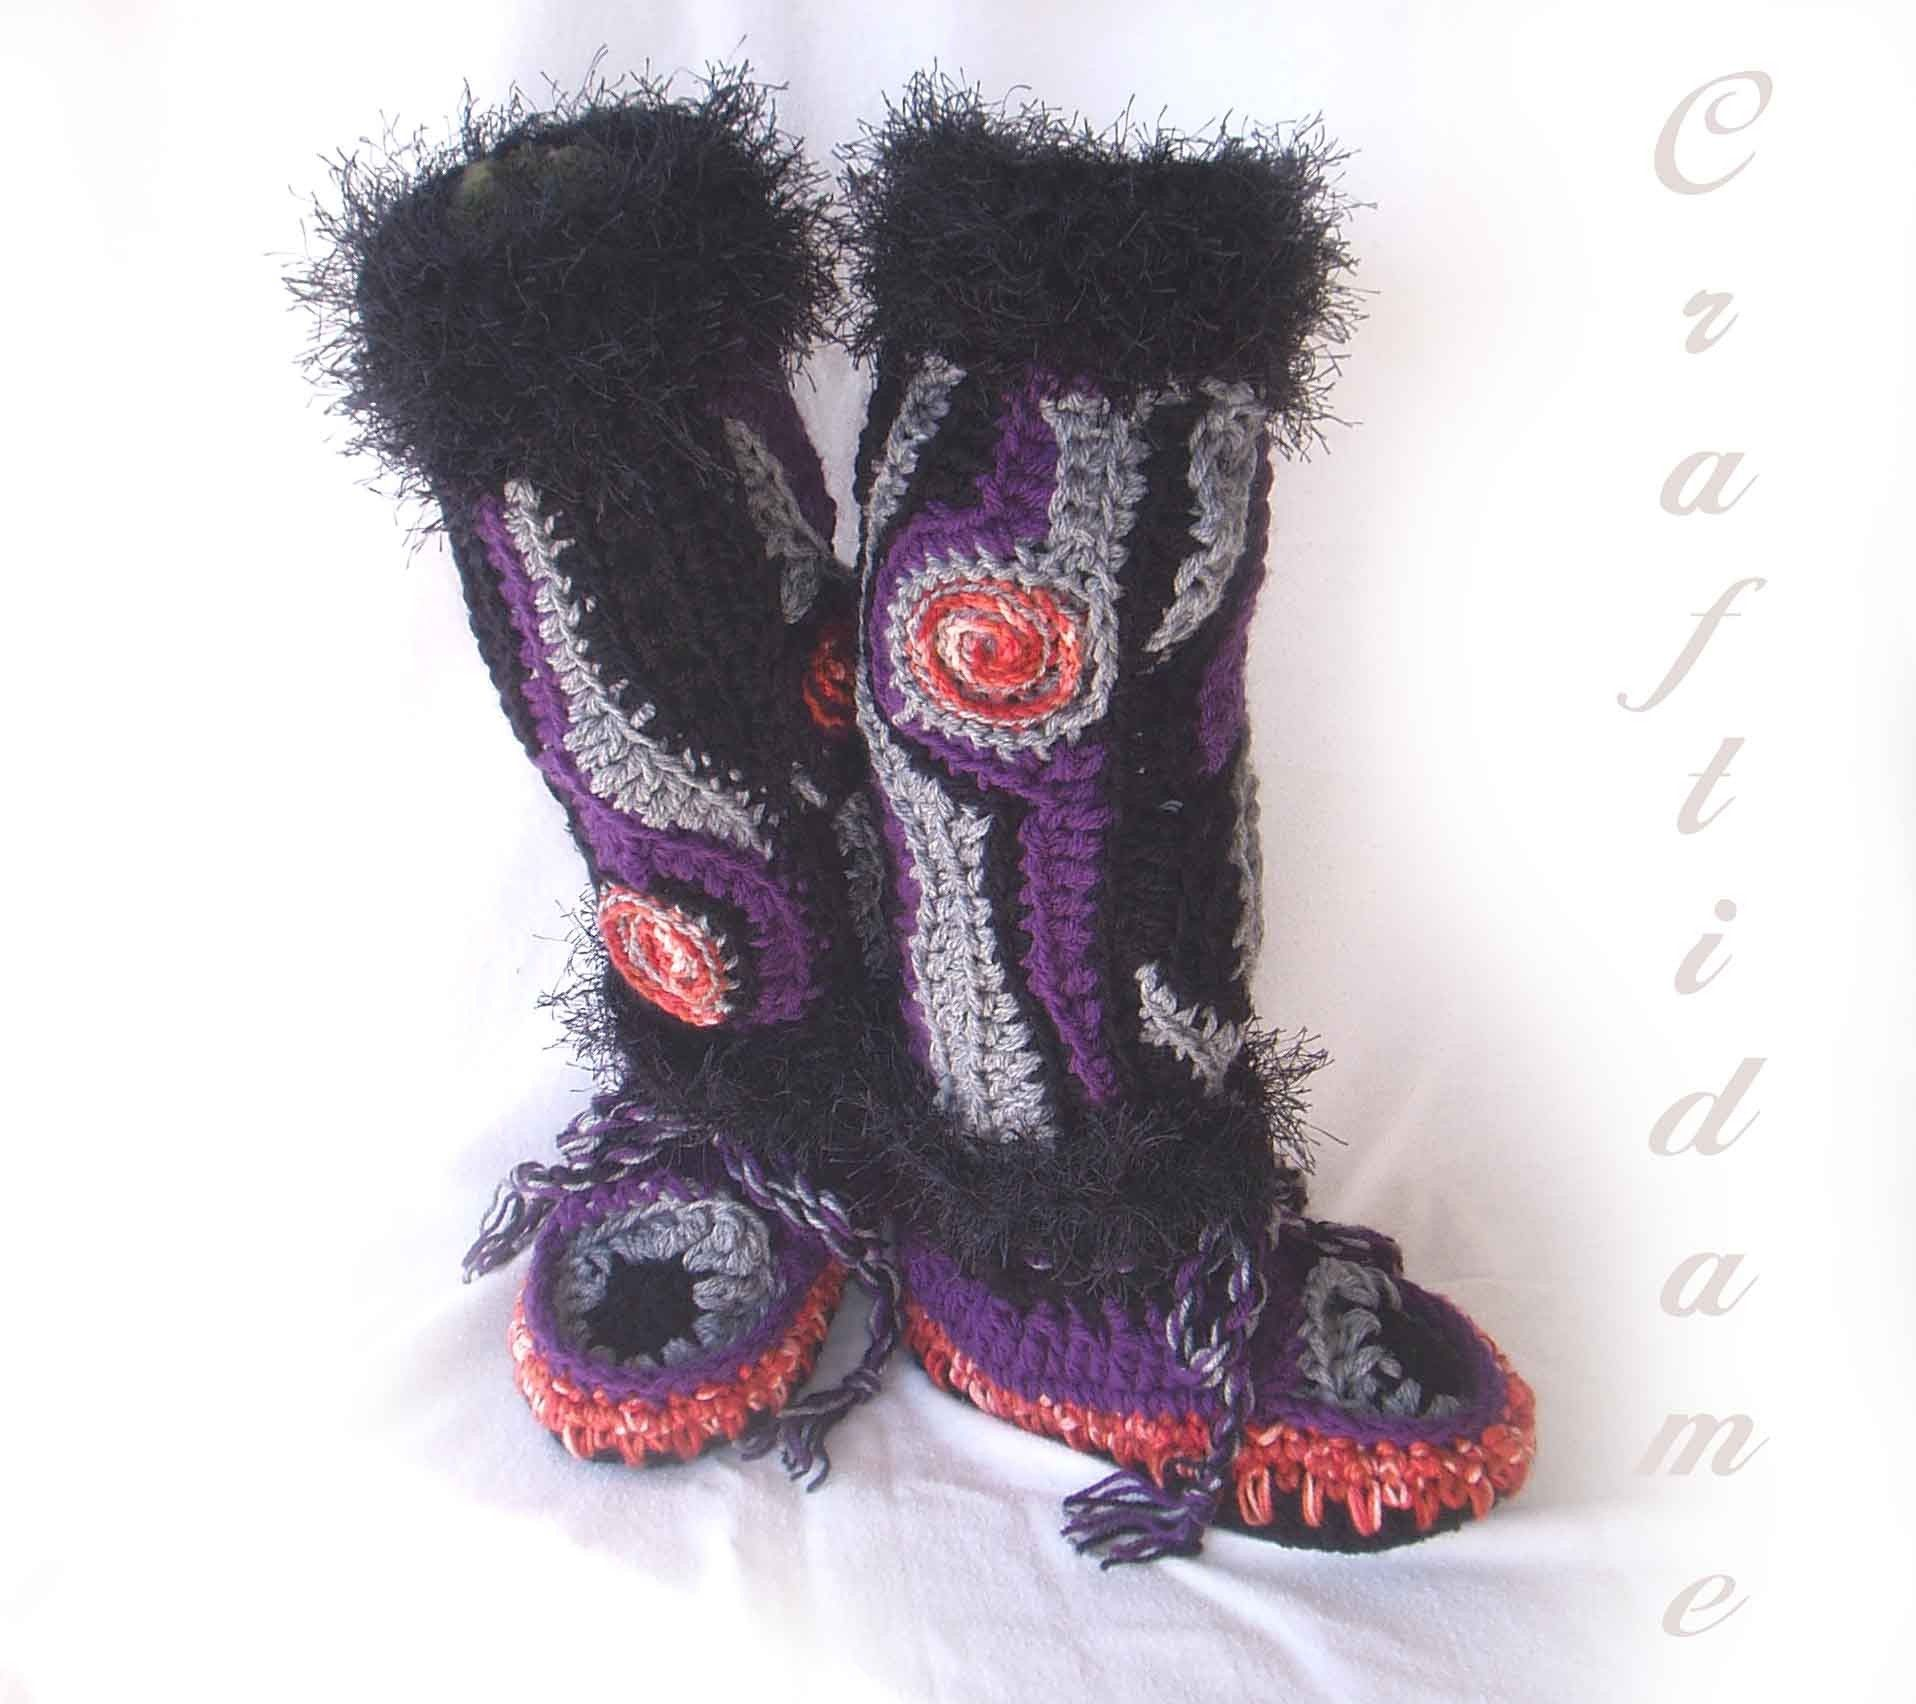 Crochet moccasin patterns for adults use our free crochet crochet moccasin patterns for adults use our free crochet pattern to make moccasin slippers for bankloansurffo Image collections